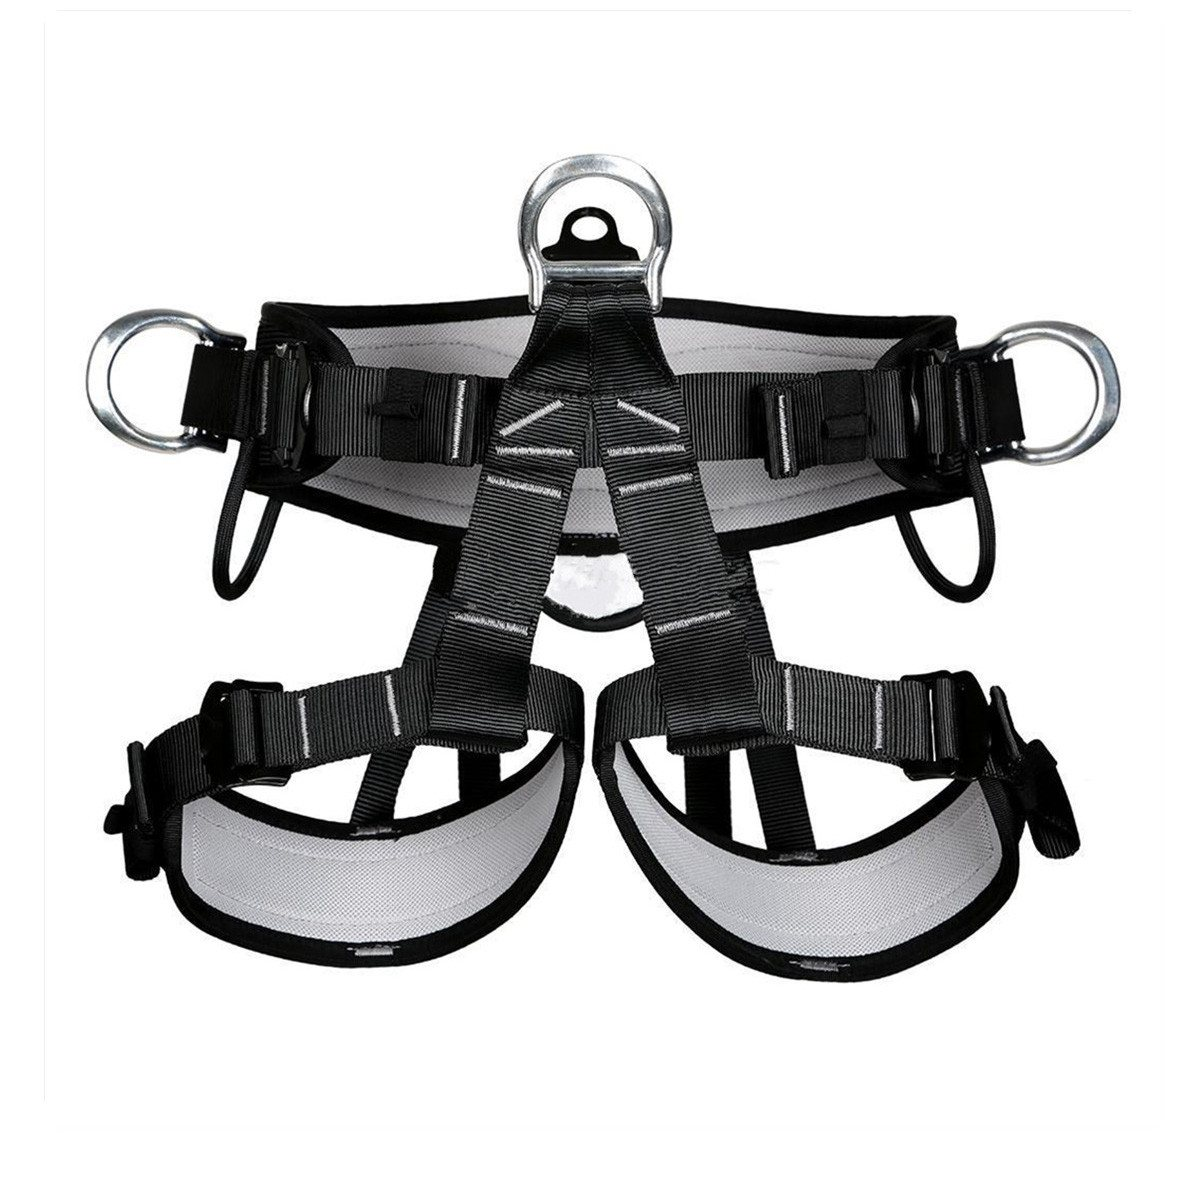 Outdoor Climbing Harness Seat Belt Safety Rappelling belt Downhill Rappel mountaineering Belts Adjustable Climb Rescue Equipment